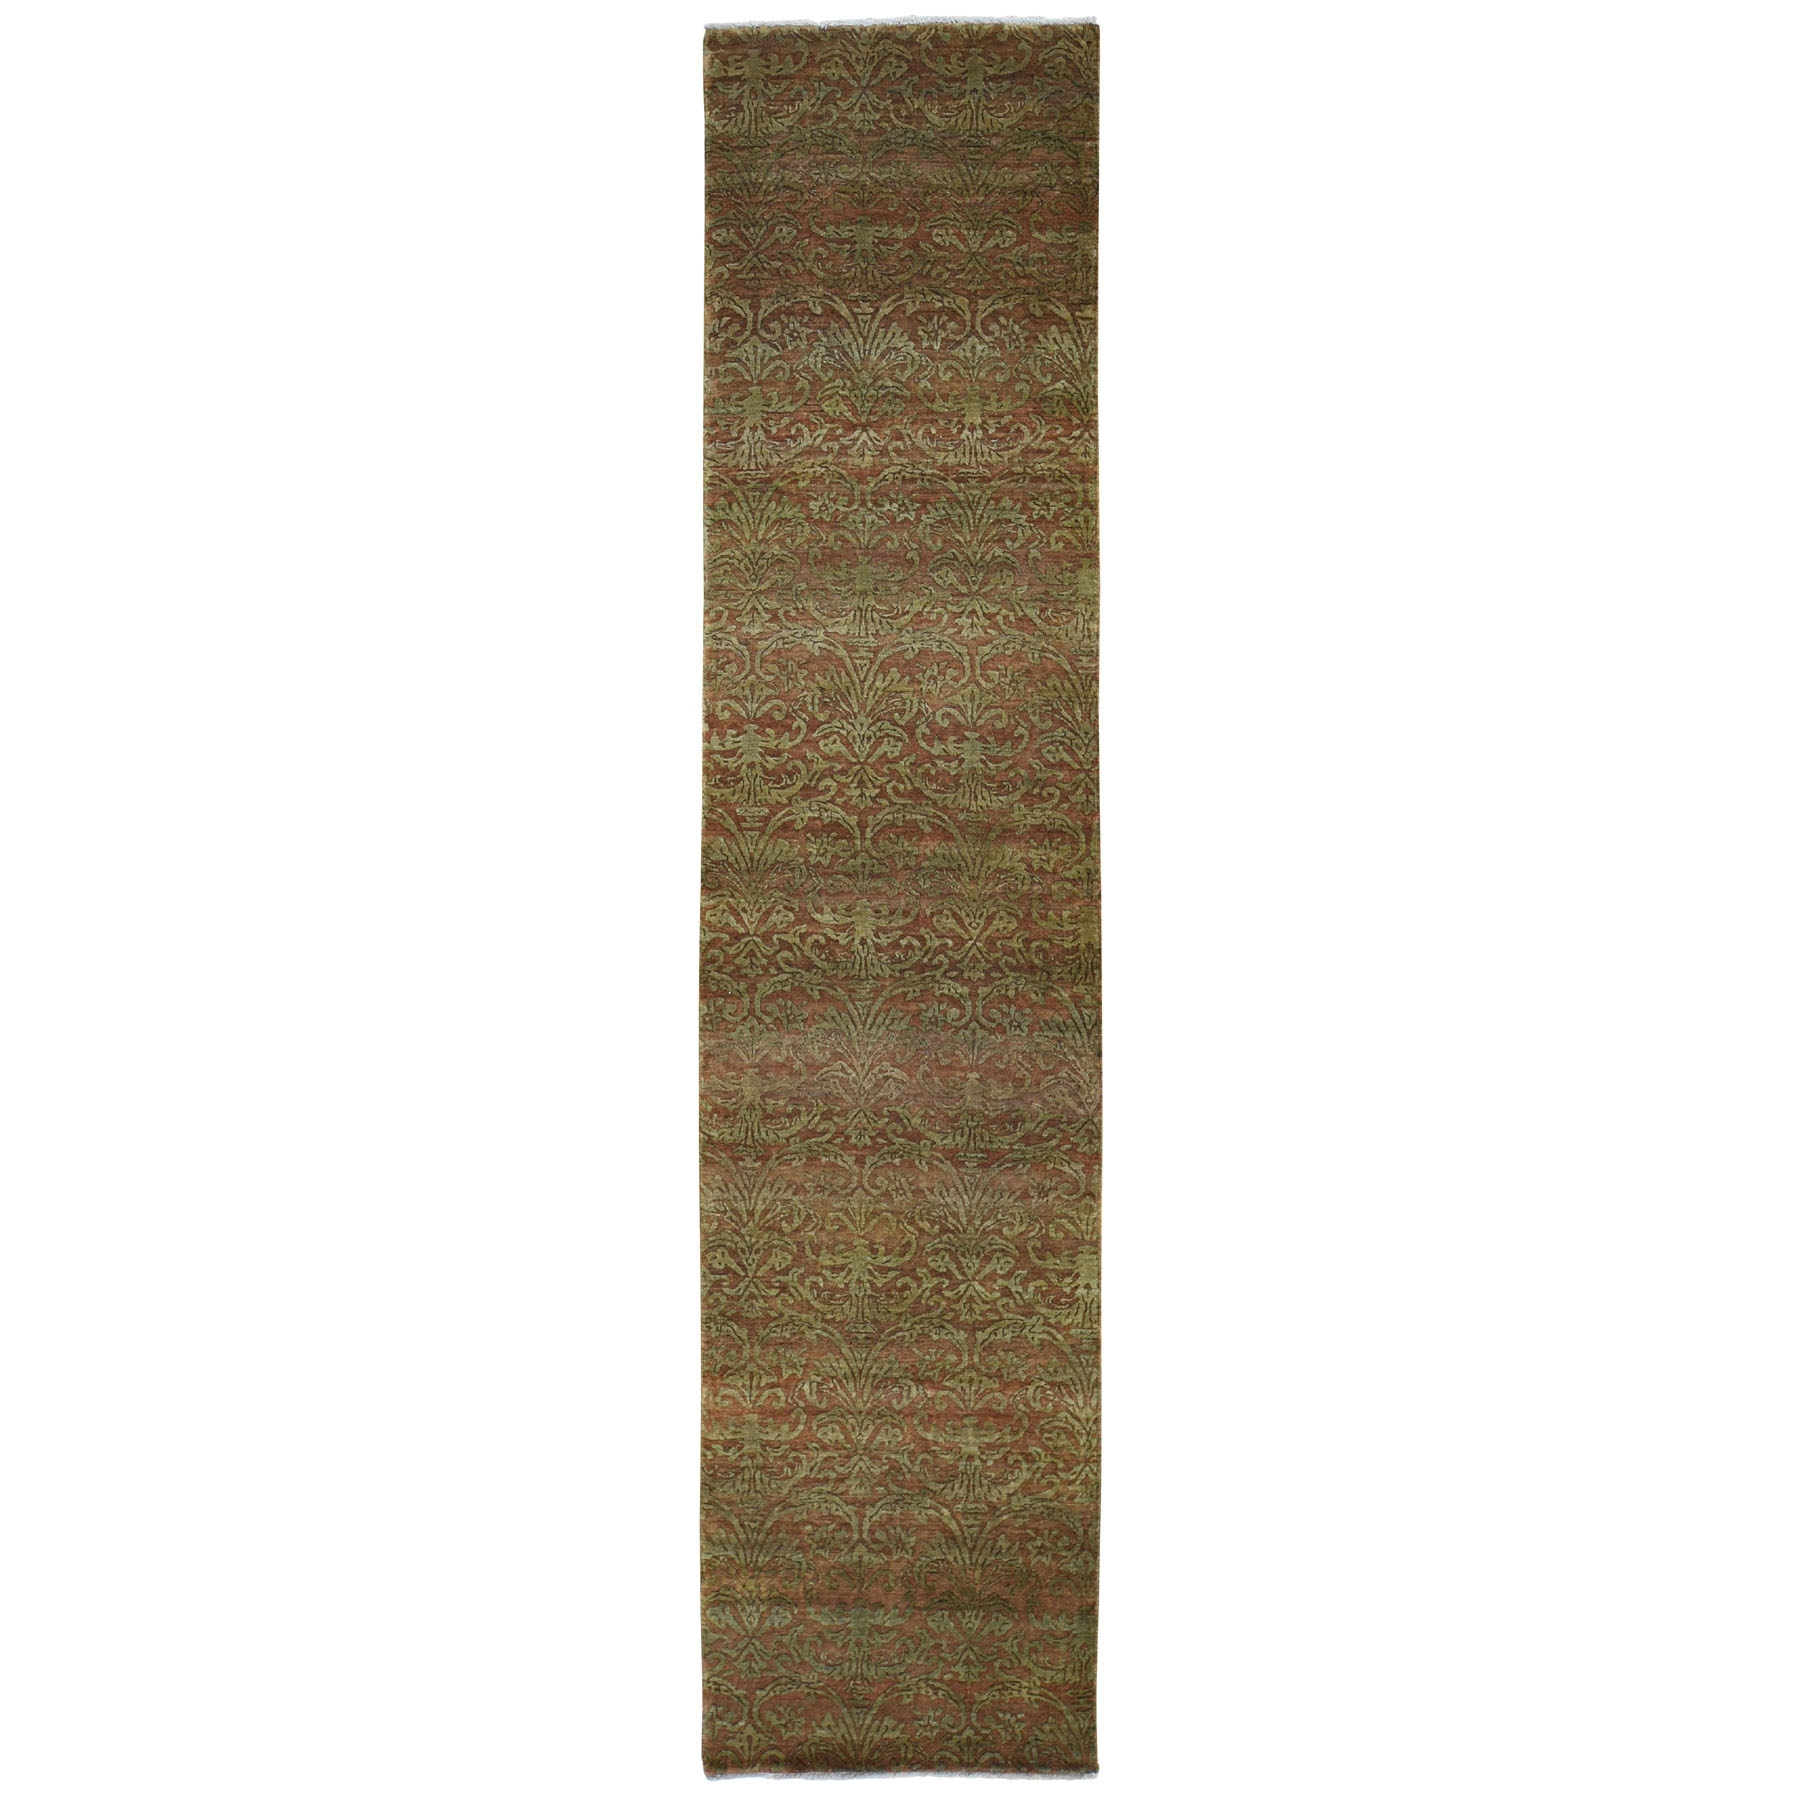 Mid Century Modern Collection Hand Knotted Brown Rug No: 0196022